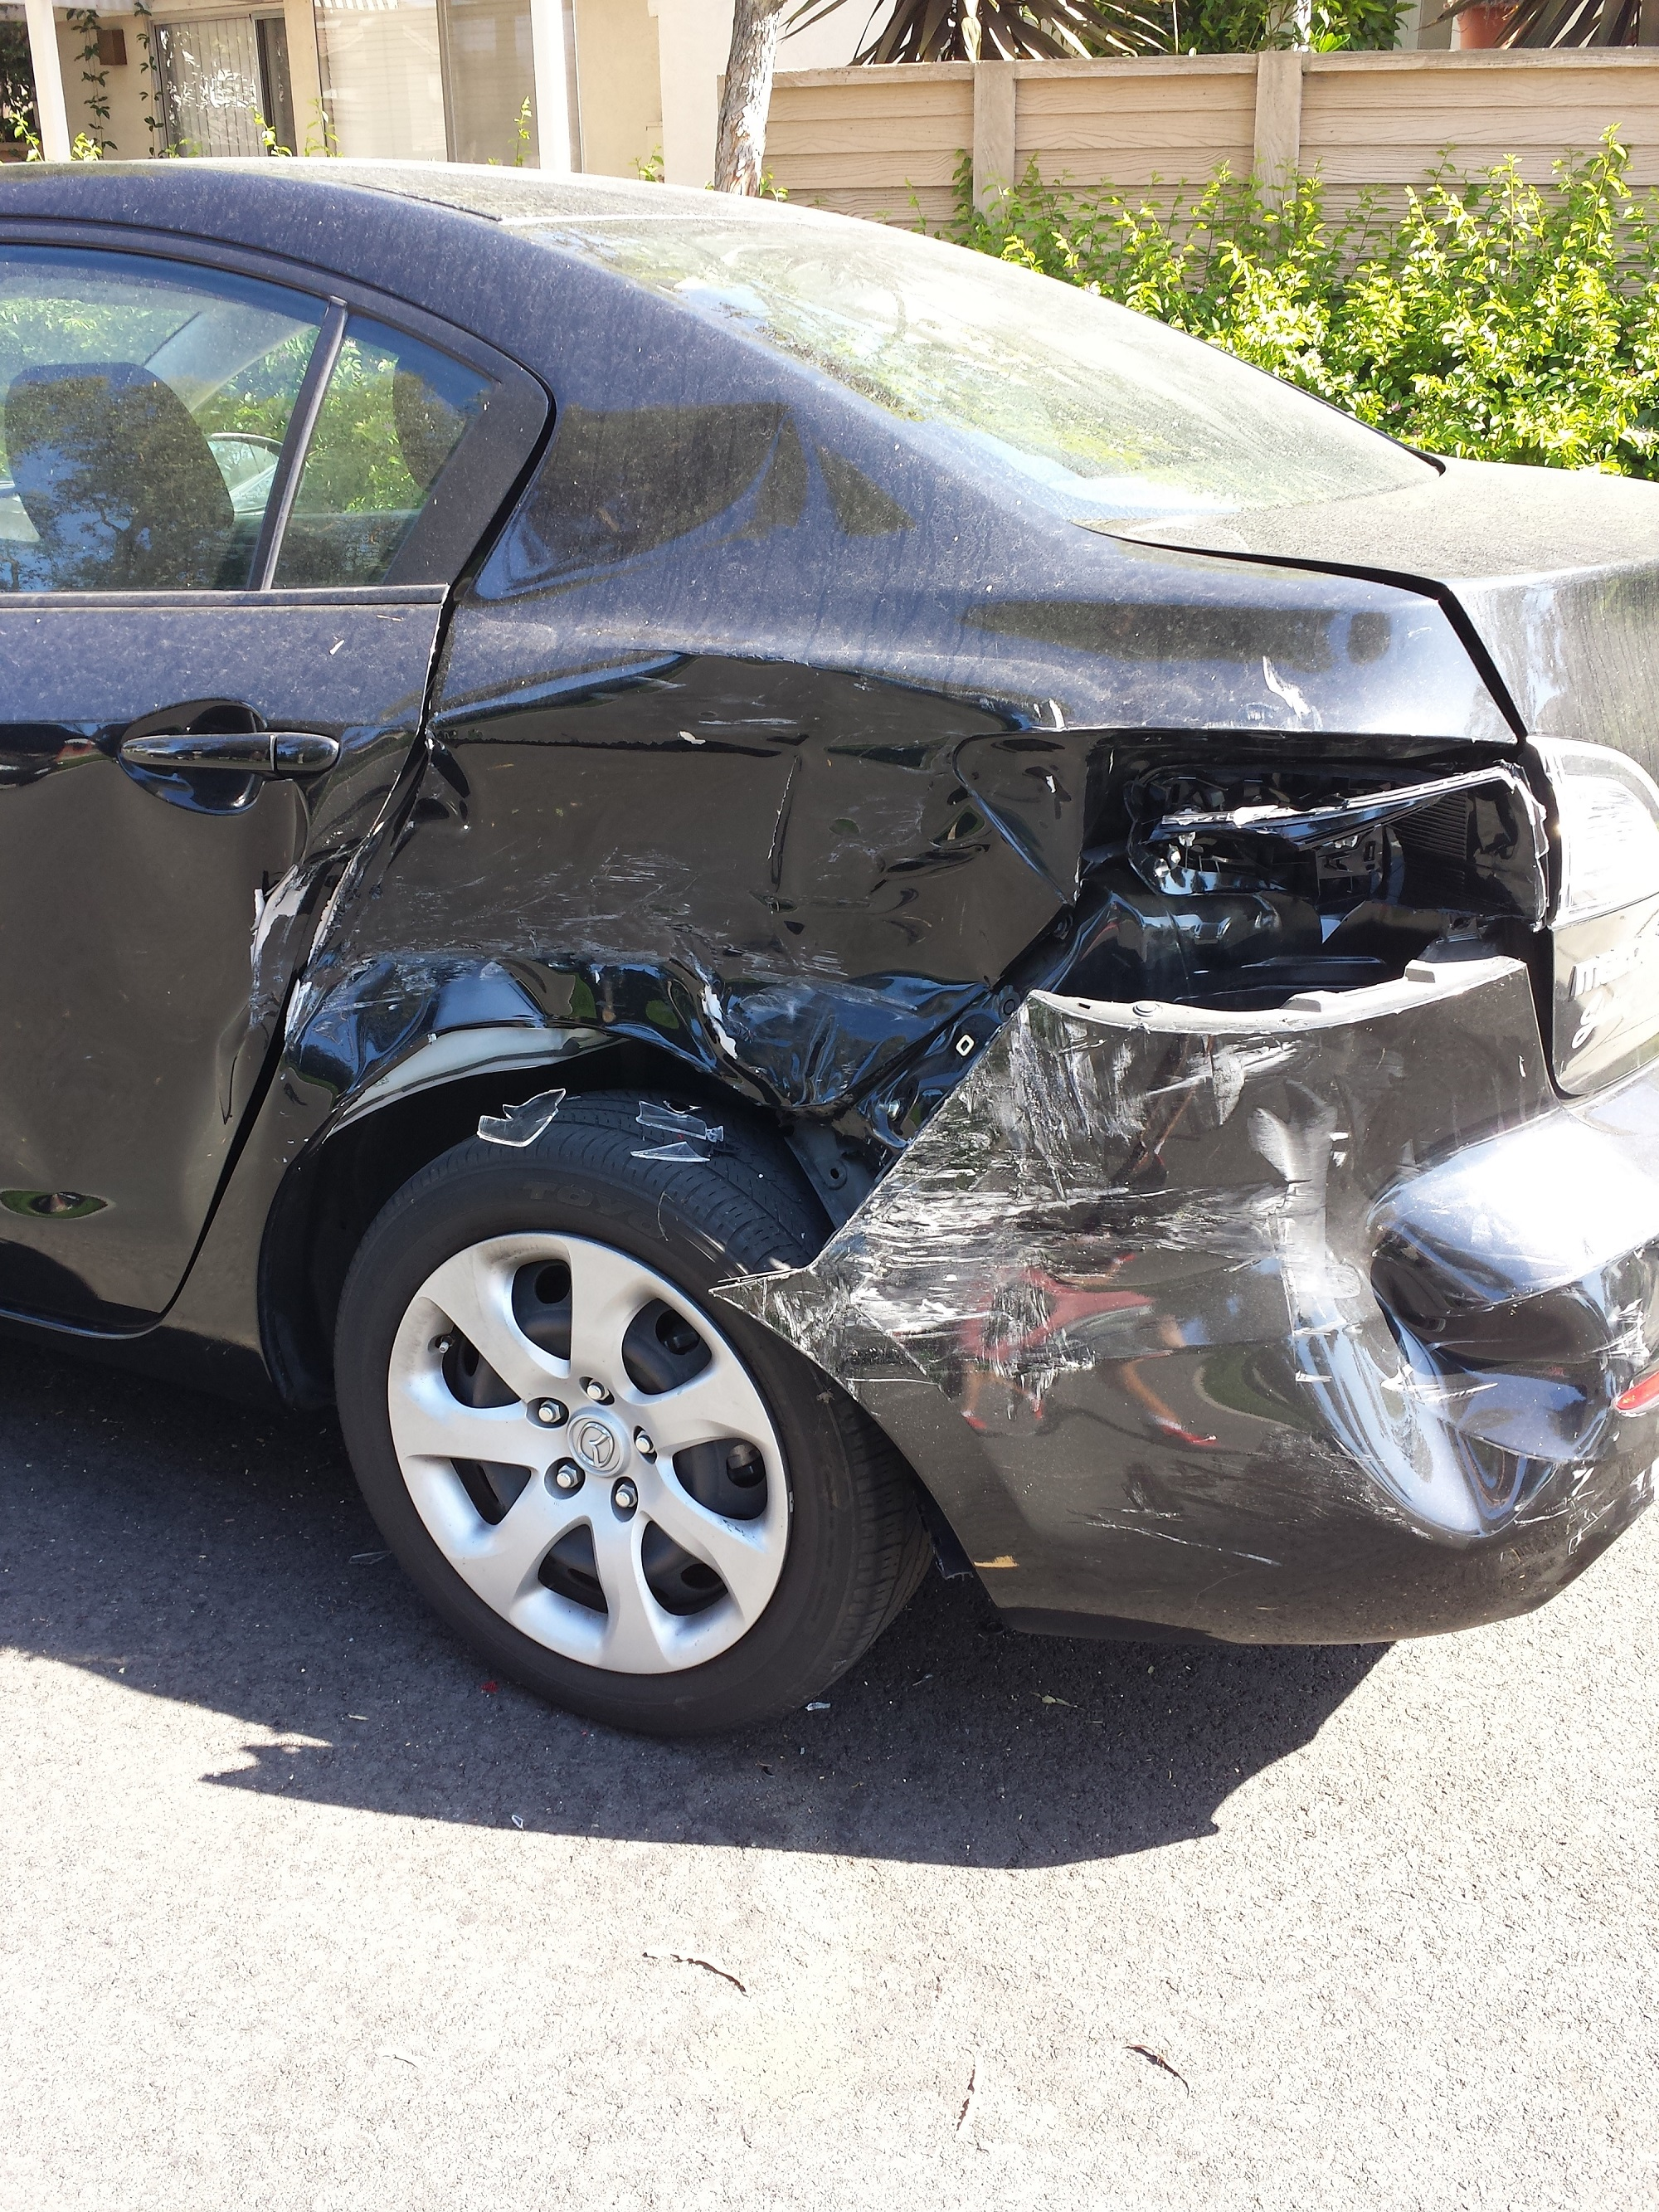 Drunk driver hit my parked car, does it look totaled? (insurance ...